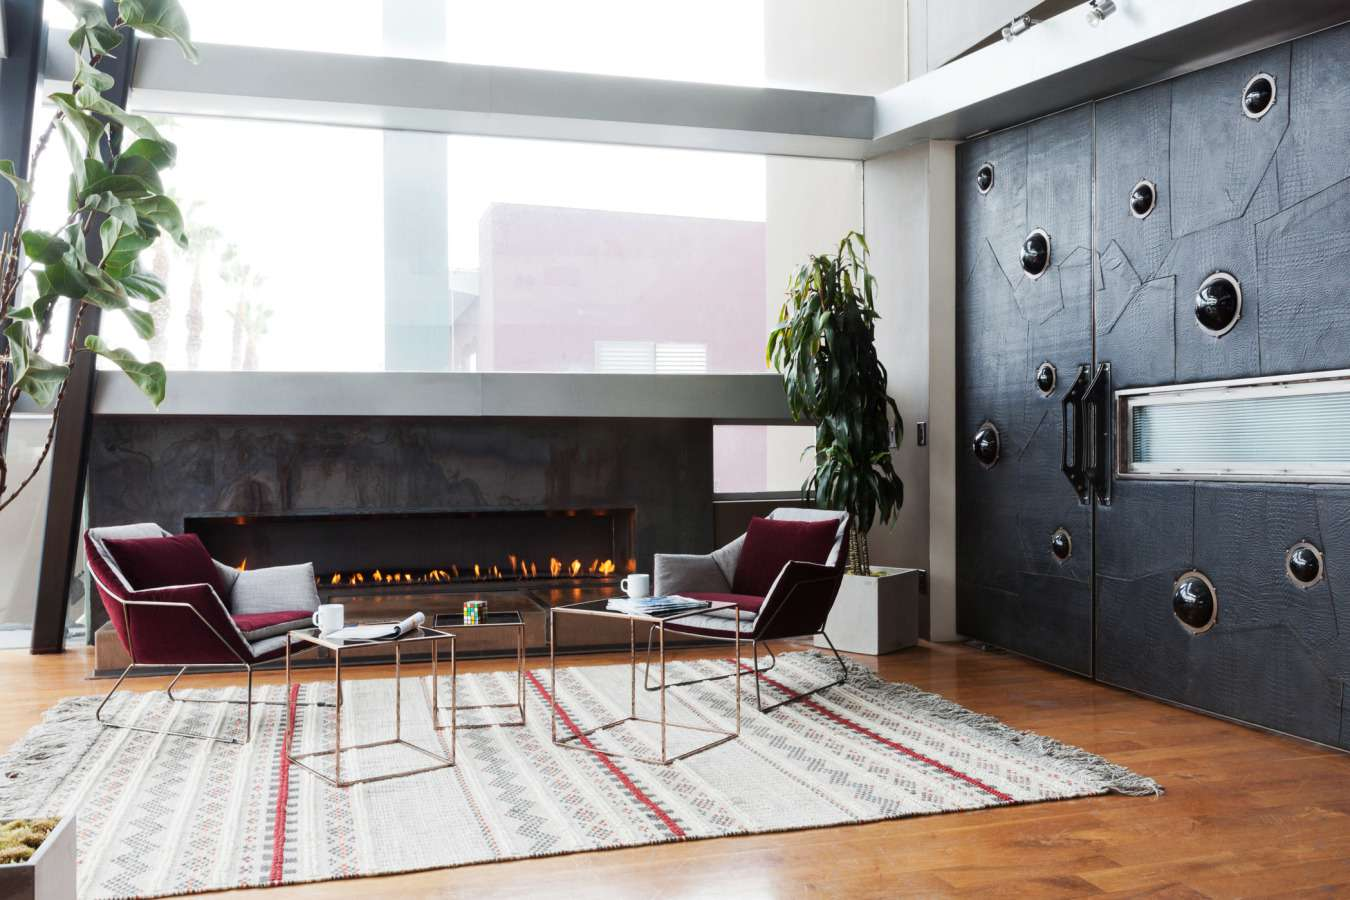 Industrial living room with plum chairs.